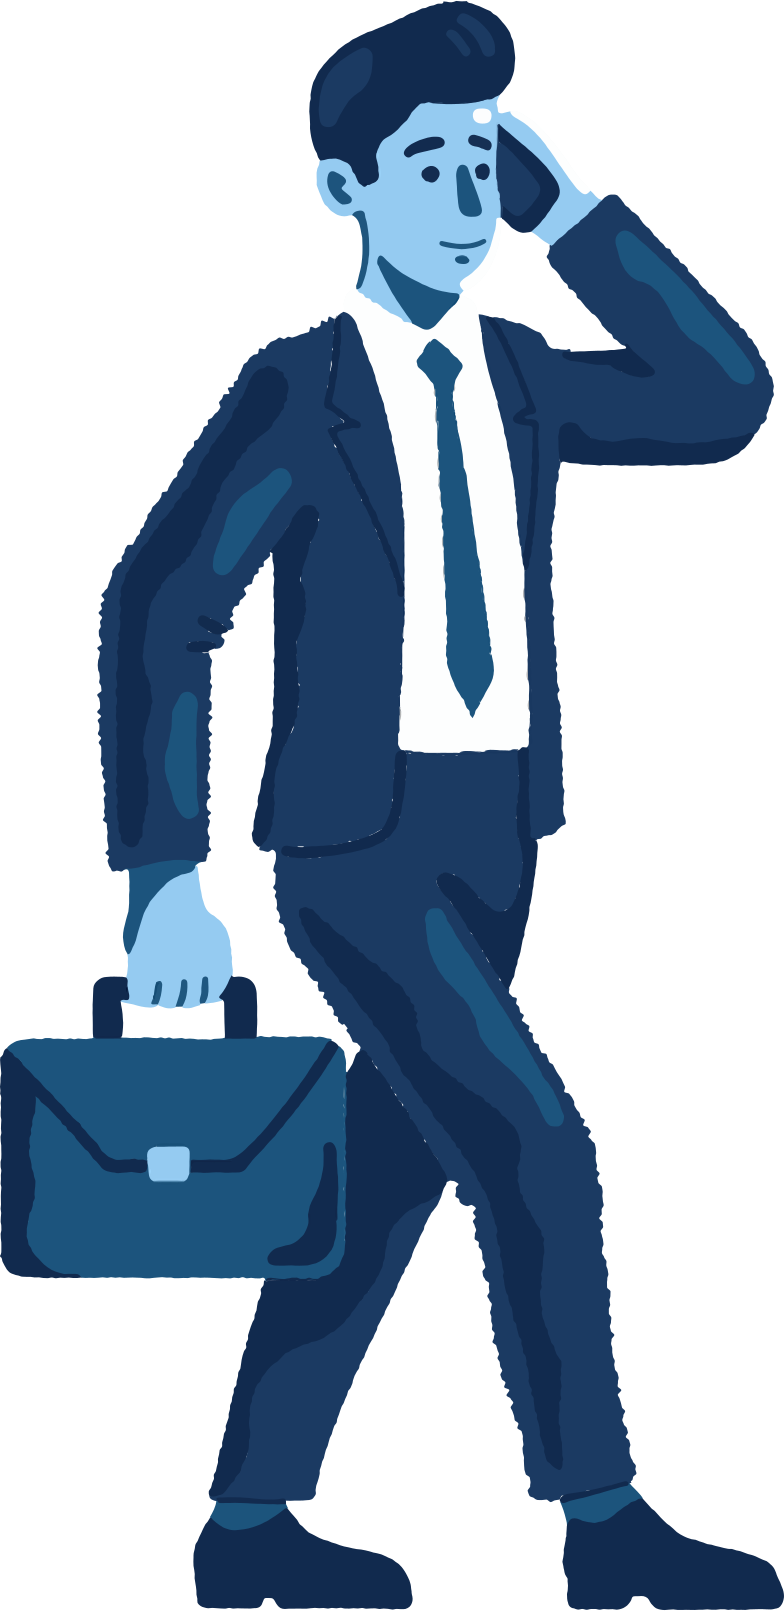 style enterpreneur Vector images in PNG and SVG | Icons8 Illustrations